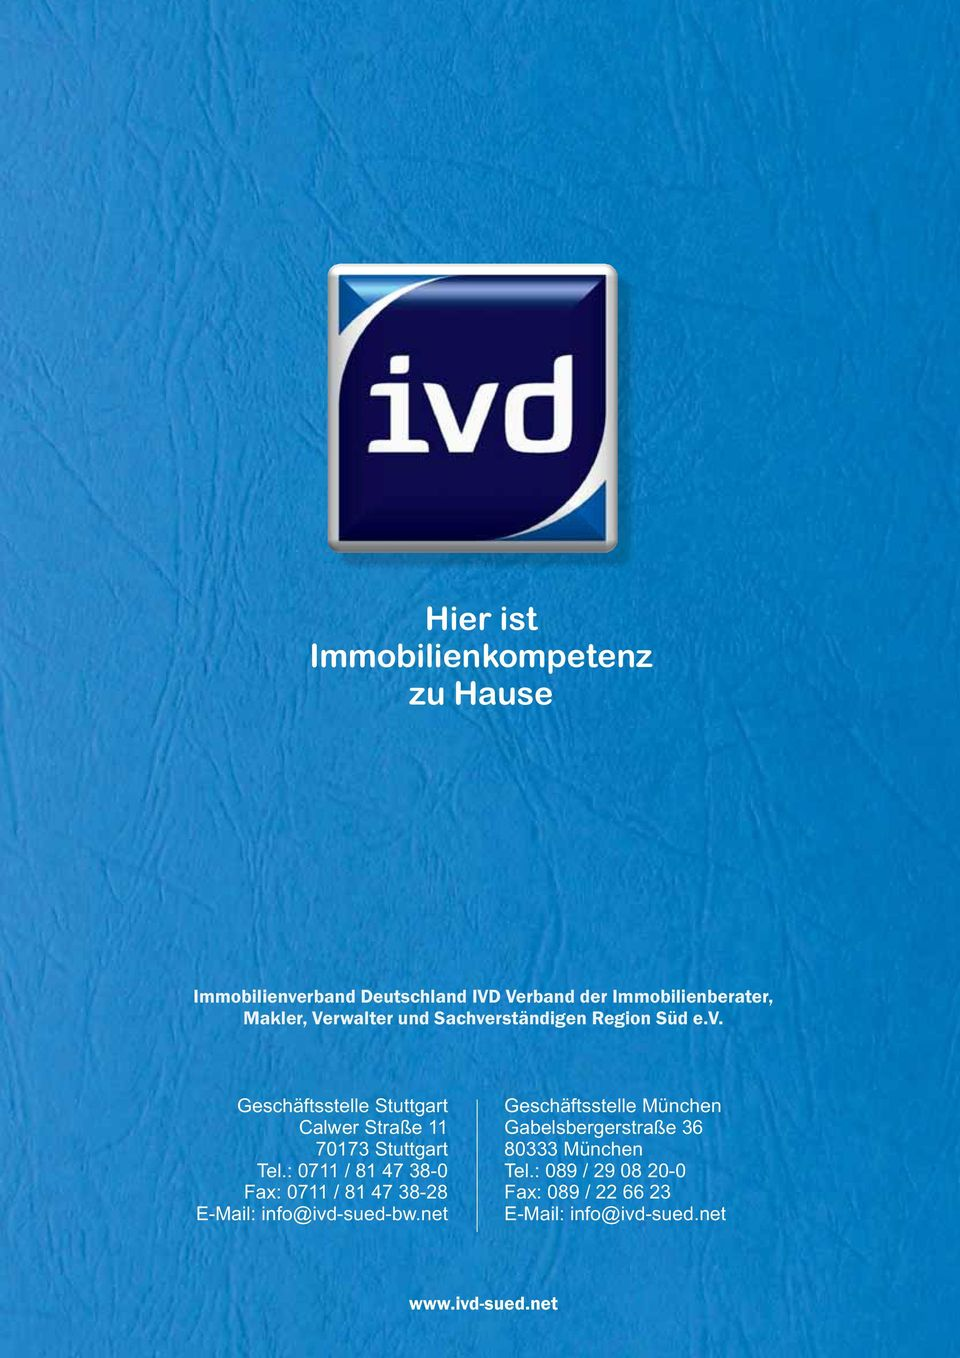 : 0711 / 81 47 38-0 Fax: 0711 / 81 47 38-28 E-Mail: info@ivd-sued-bw.